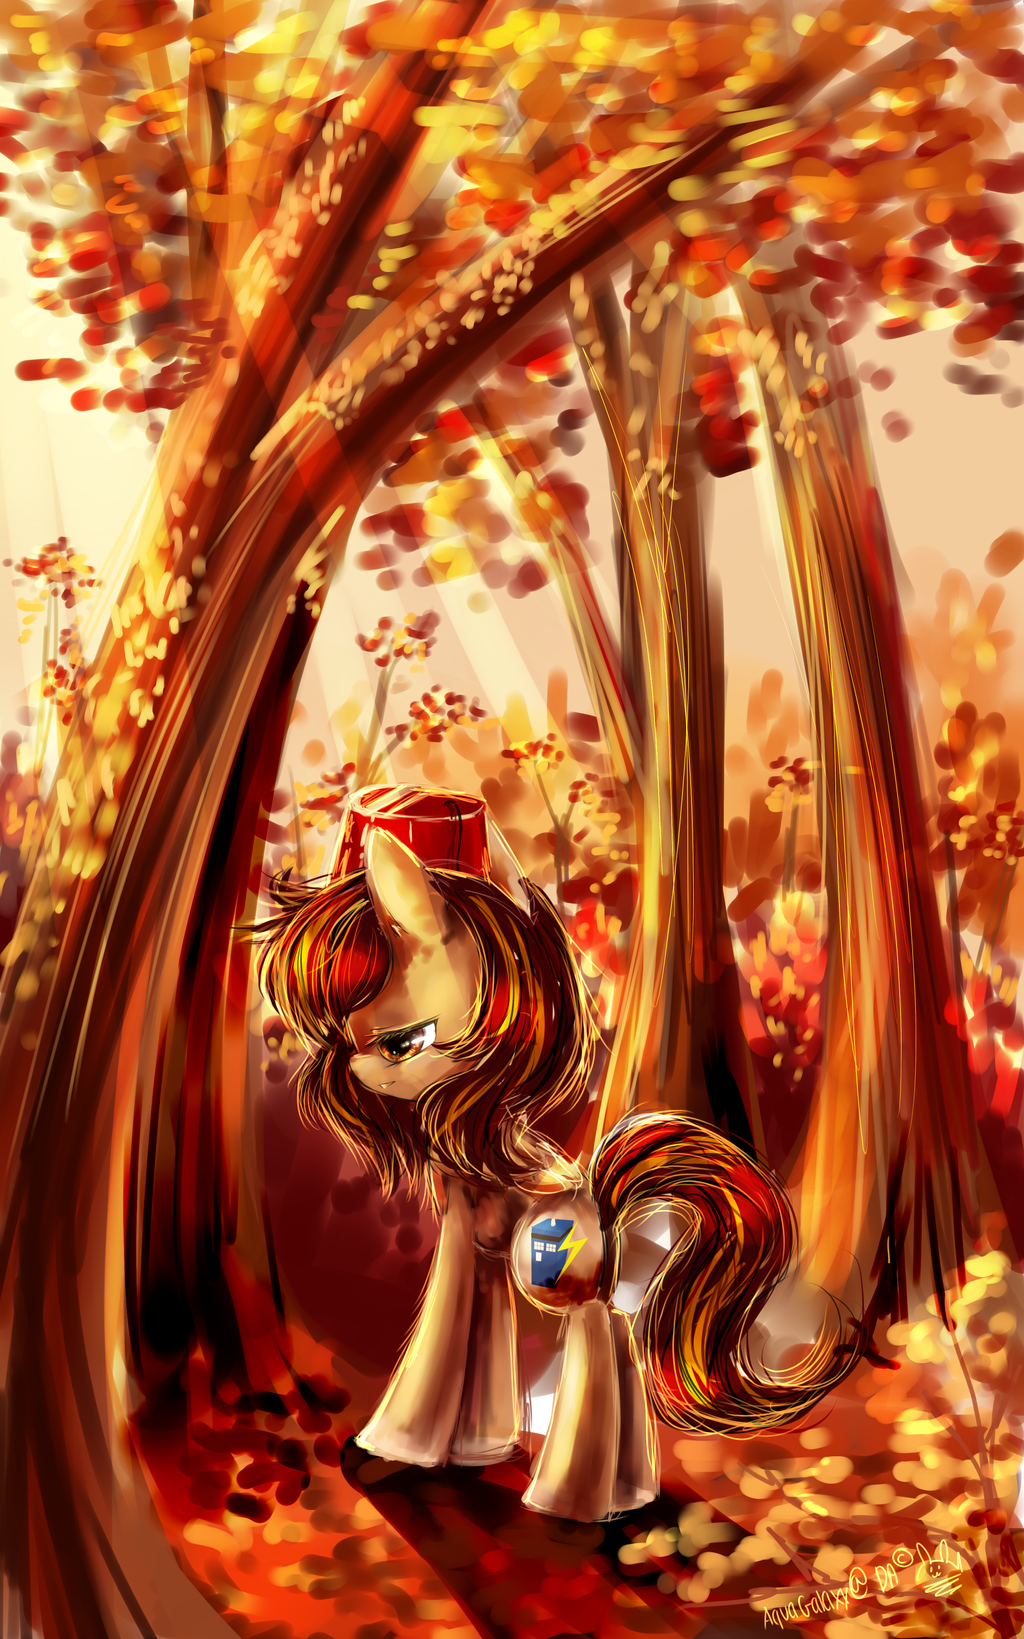 Pony Autumn bloom by AquaGalaxy